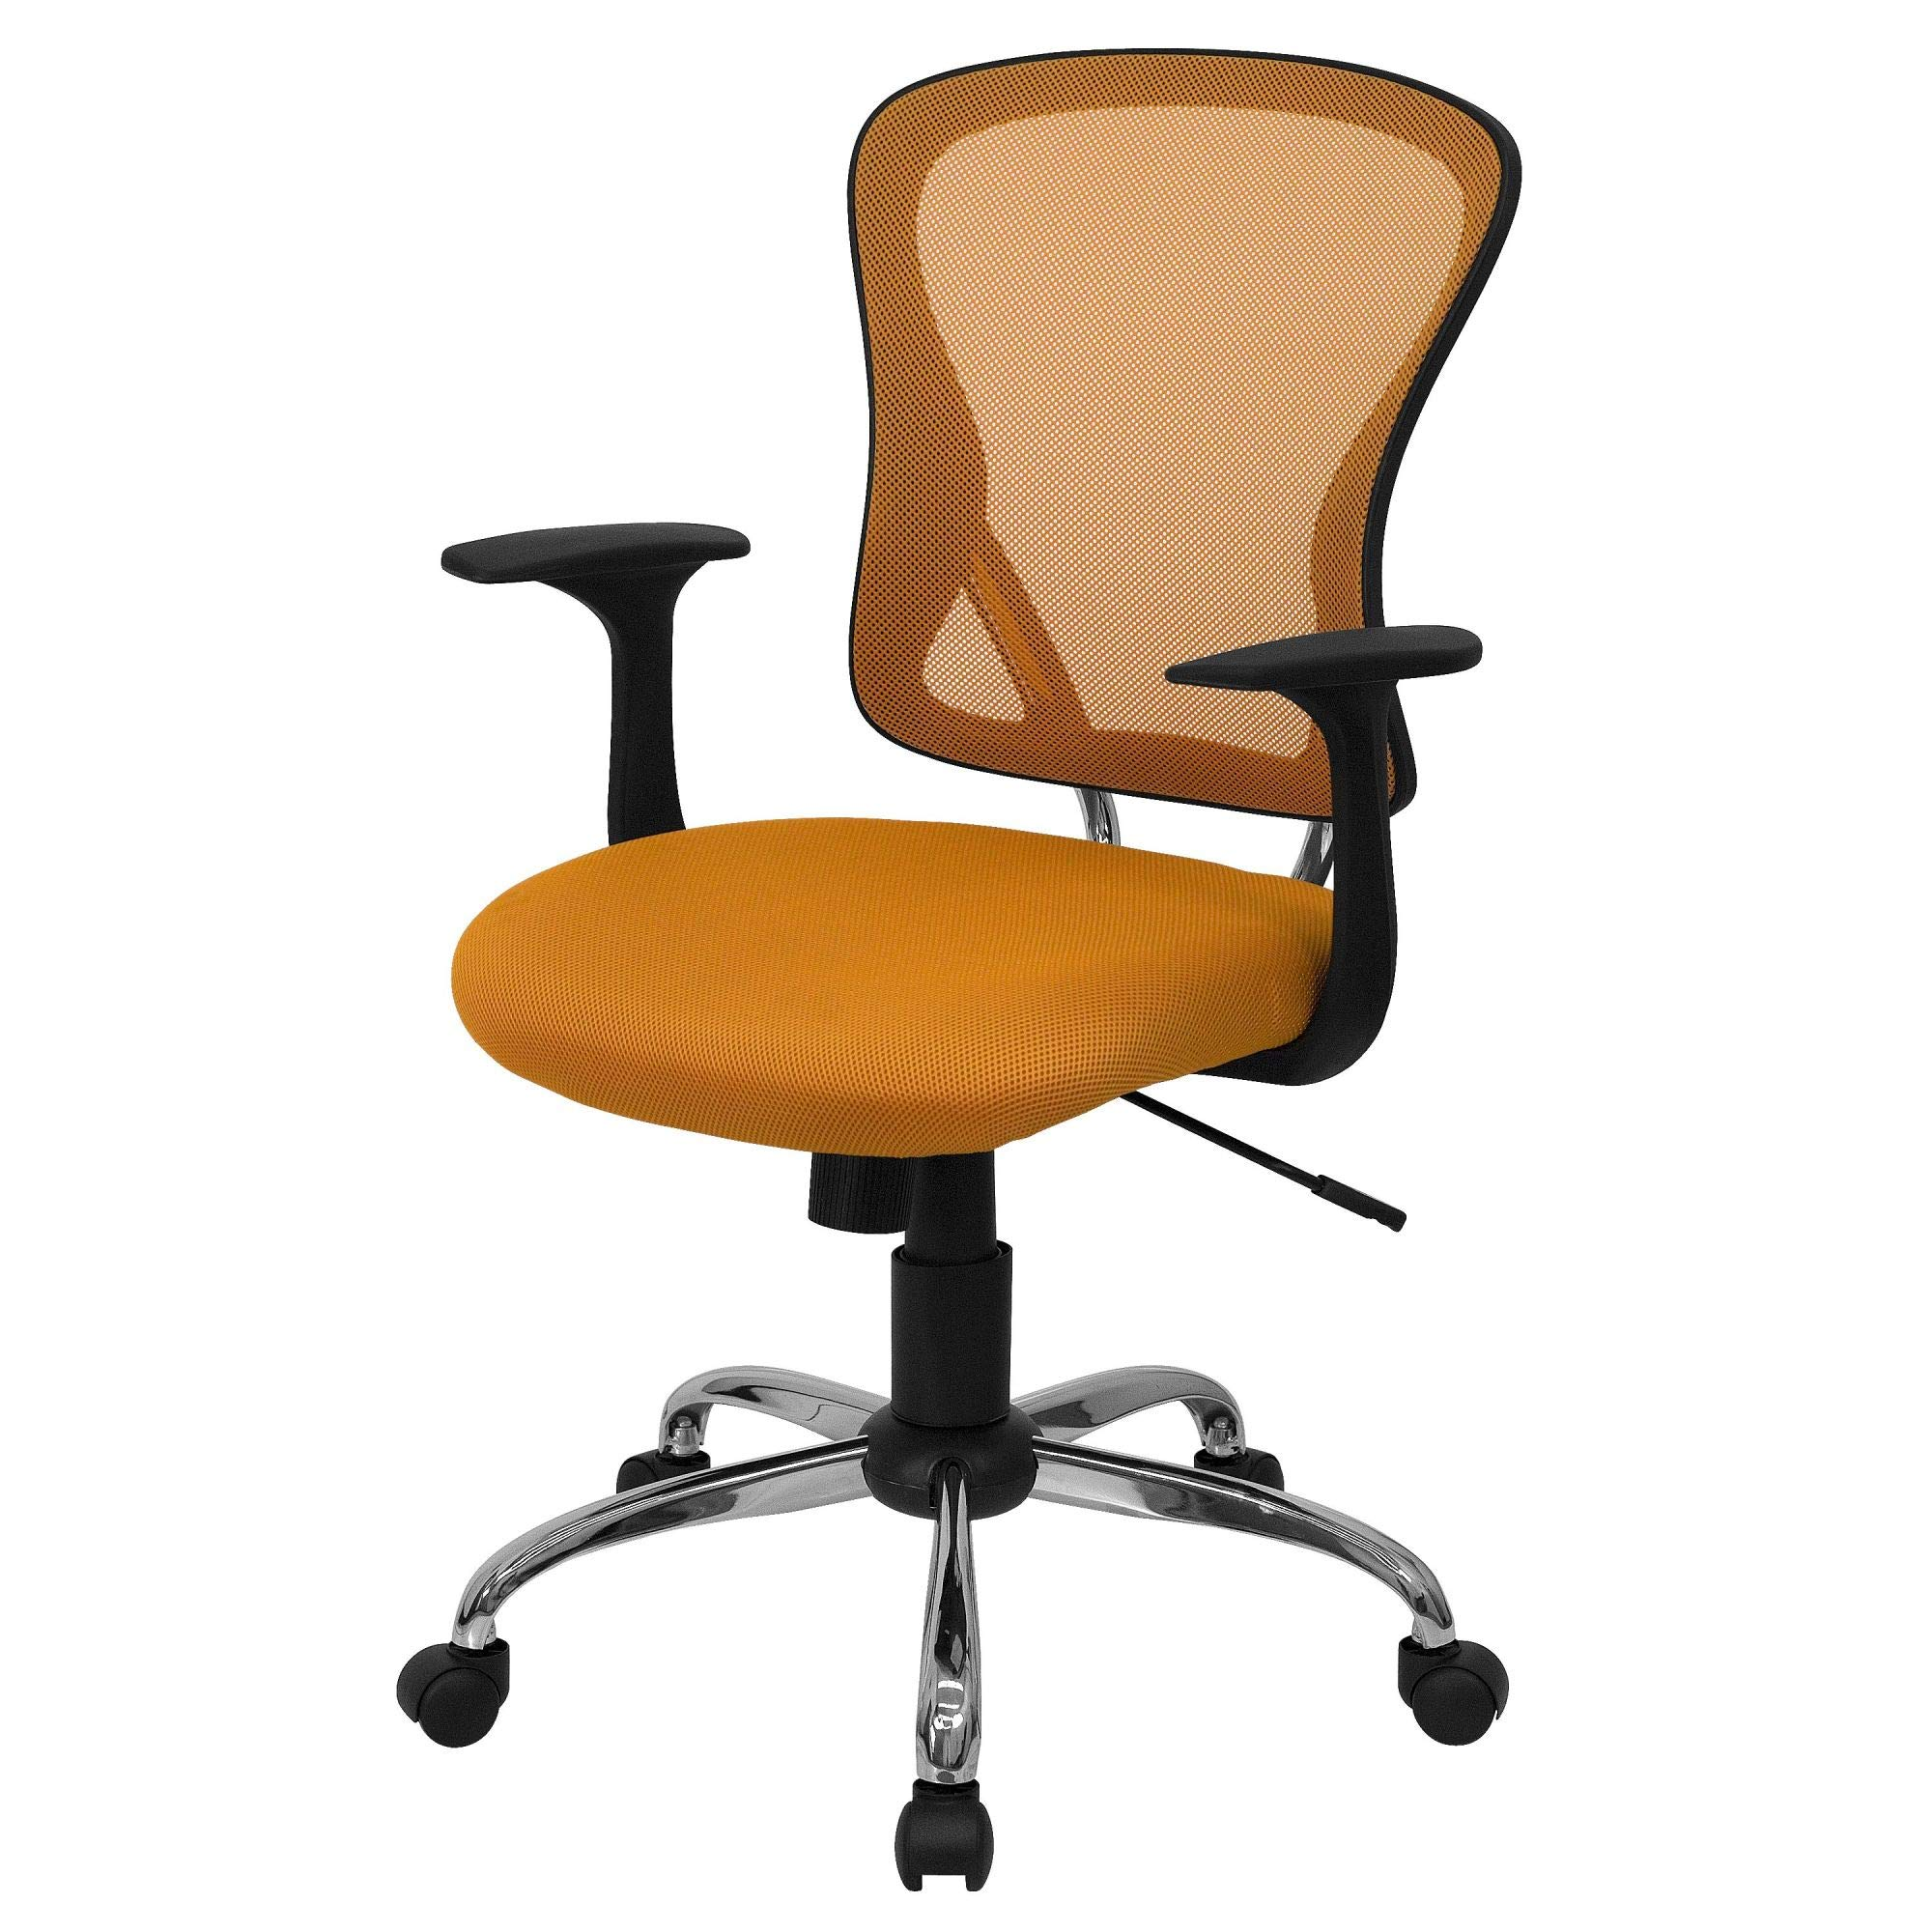 Delacora H-8369F-ORG-GG 25.25 Inch Wide Fabric Swivel Task Chair with Mesh Back